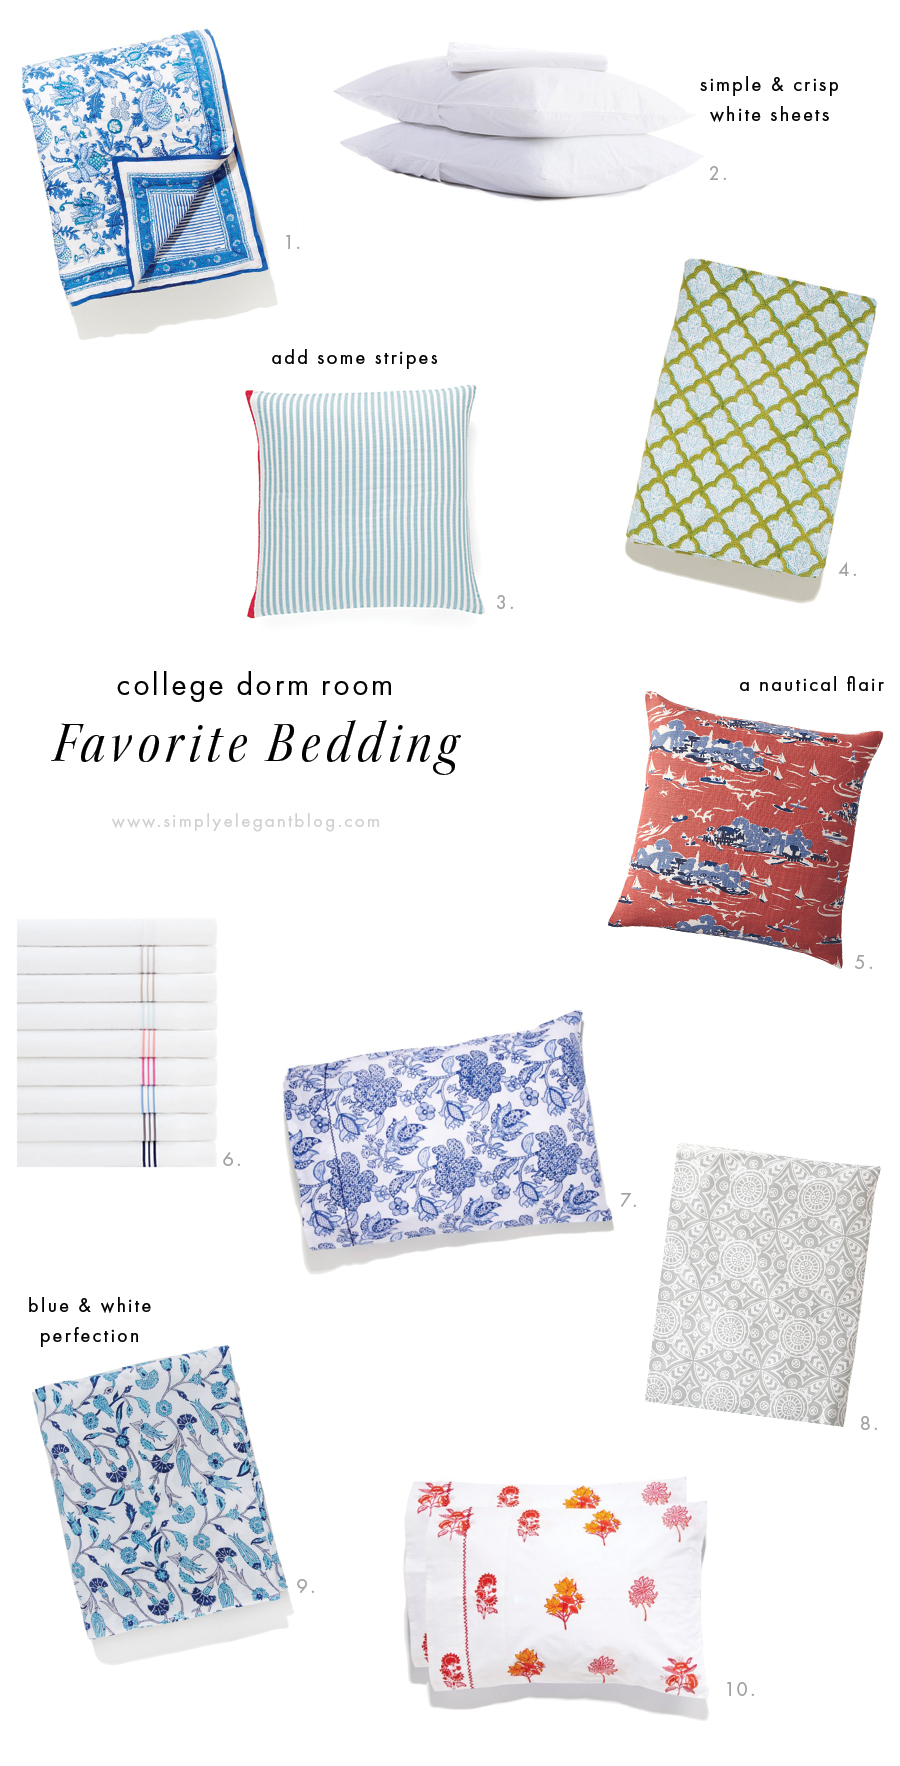 preppy-college-bedding-guide